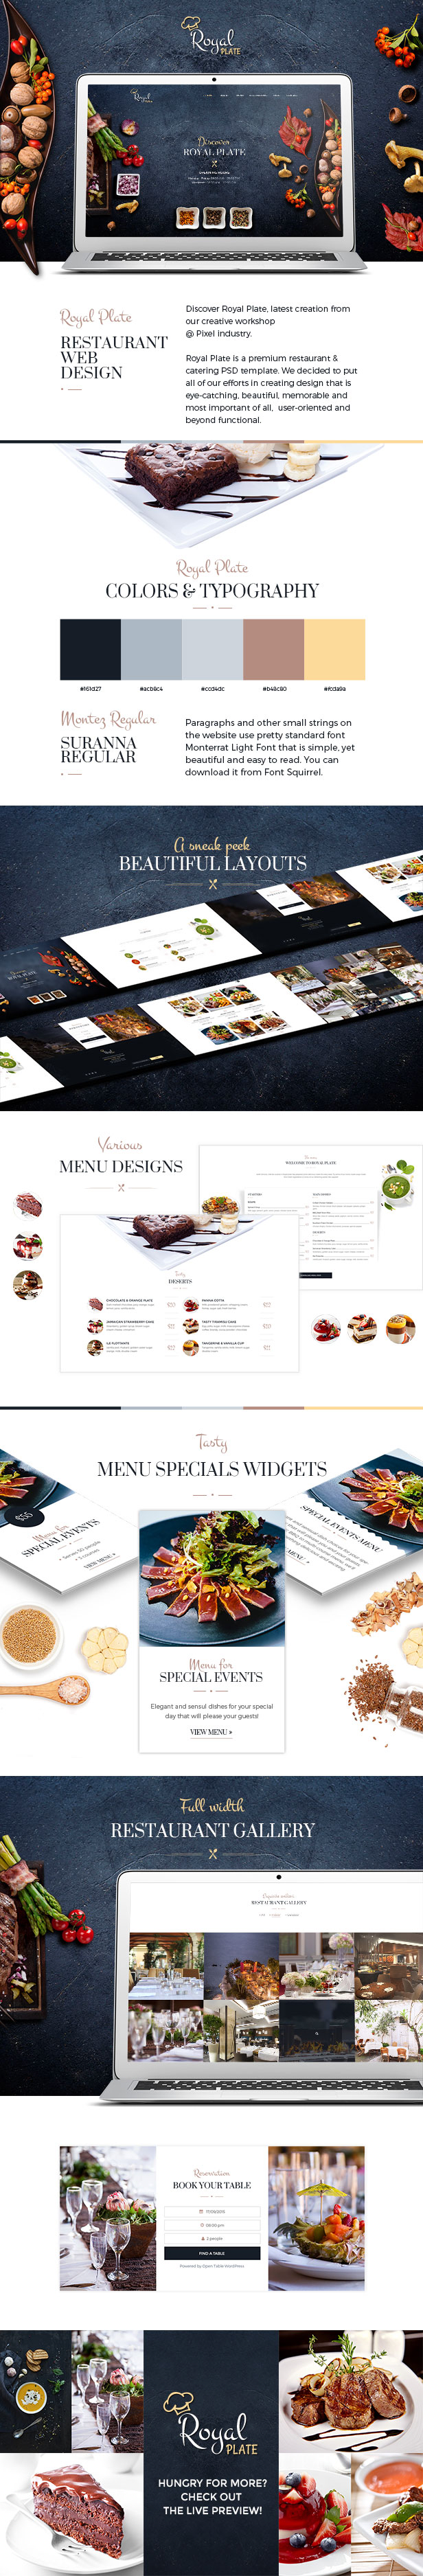 Royal Plate Restaurant & Catering PSD Template